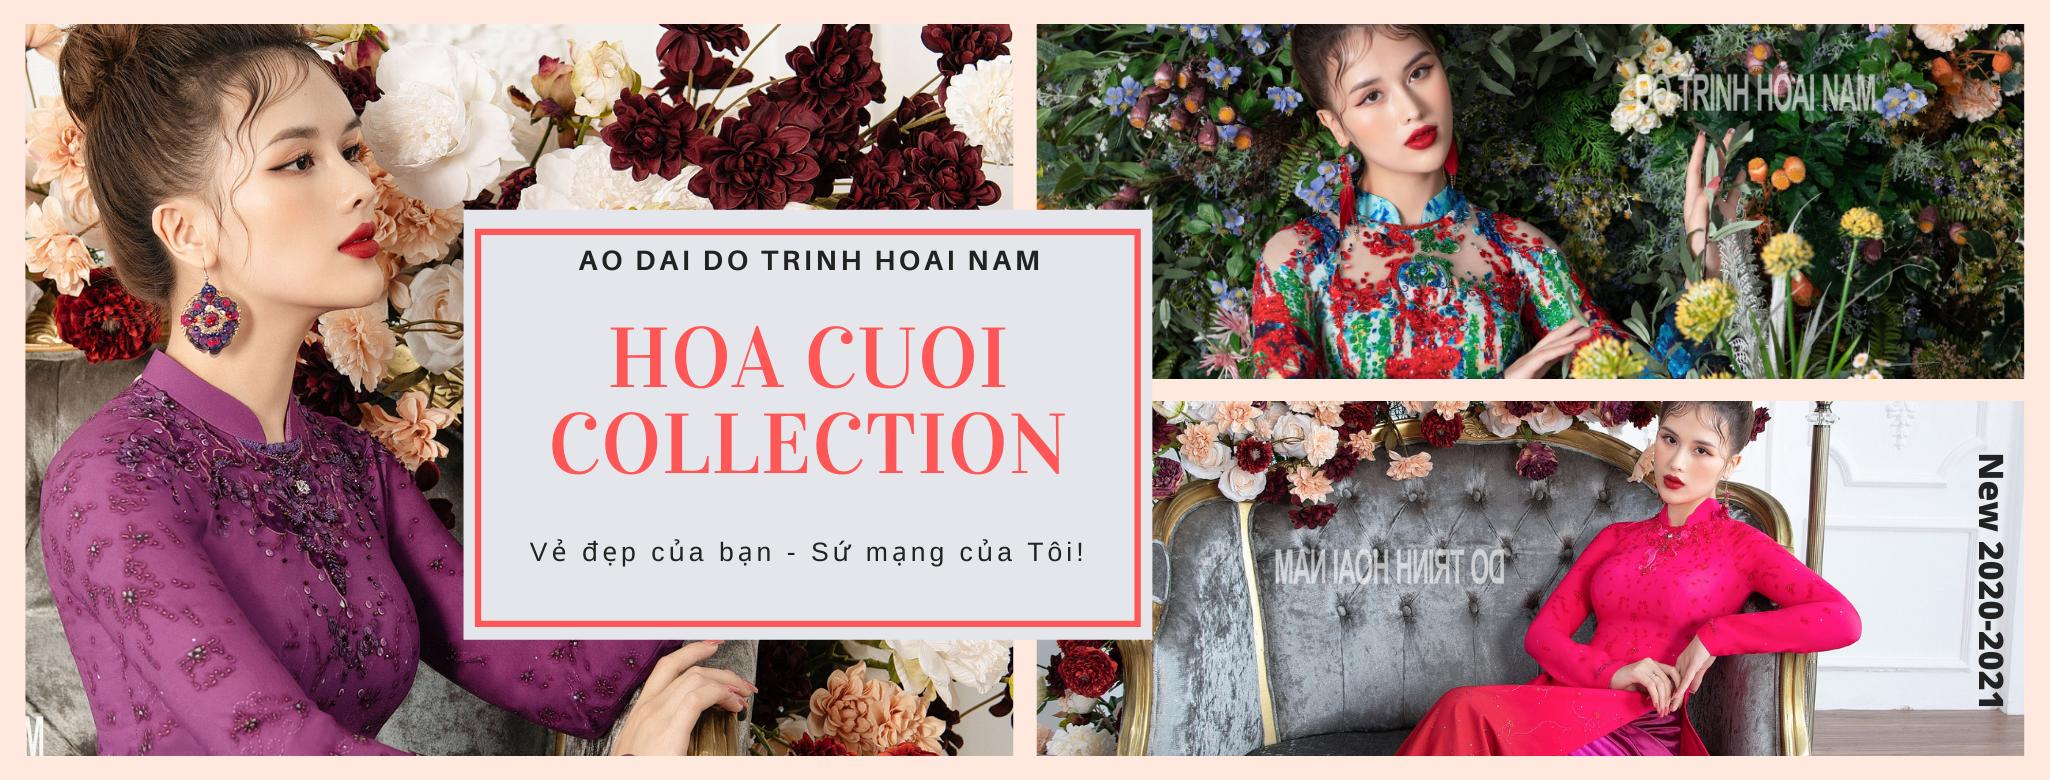 HOA CUOI COLLECTION